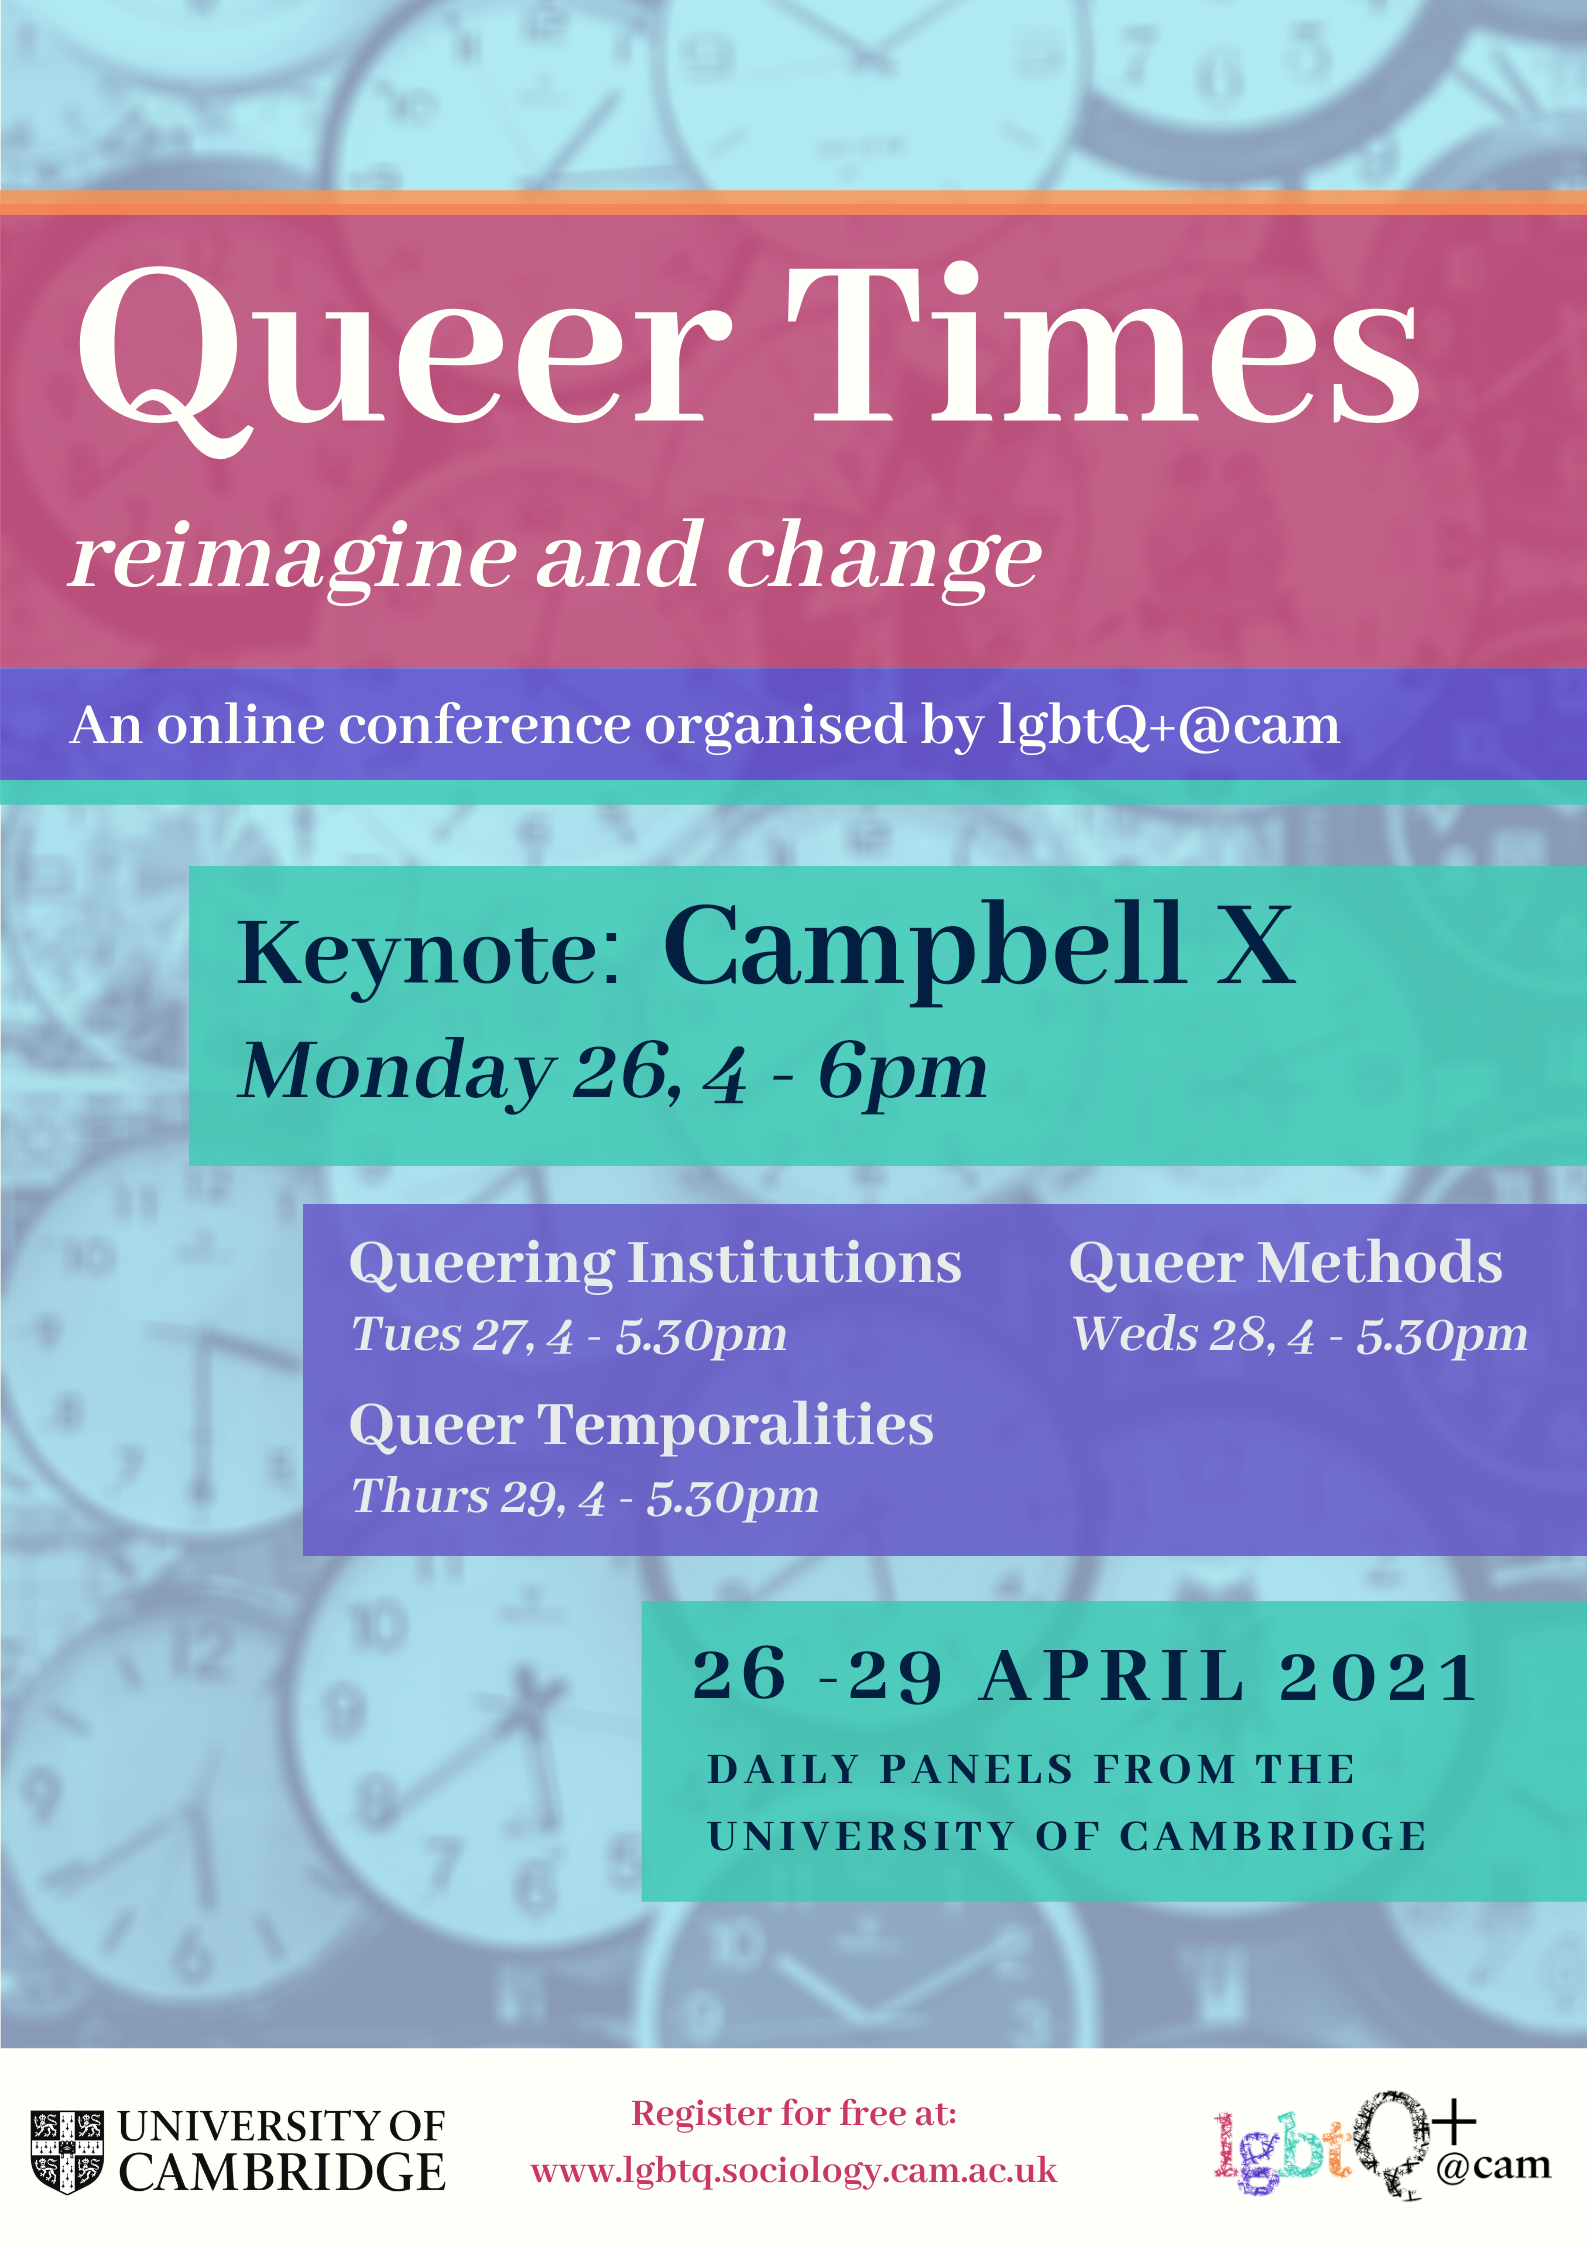 Queer TImes 2021 conference: 26th - 29th April